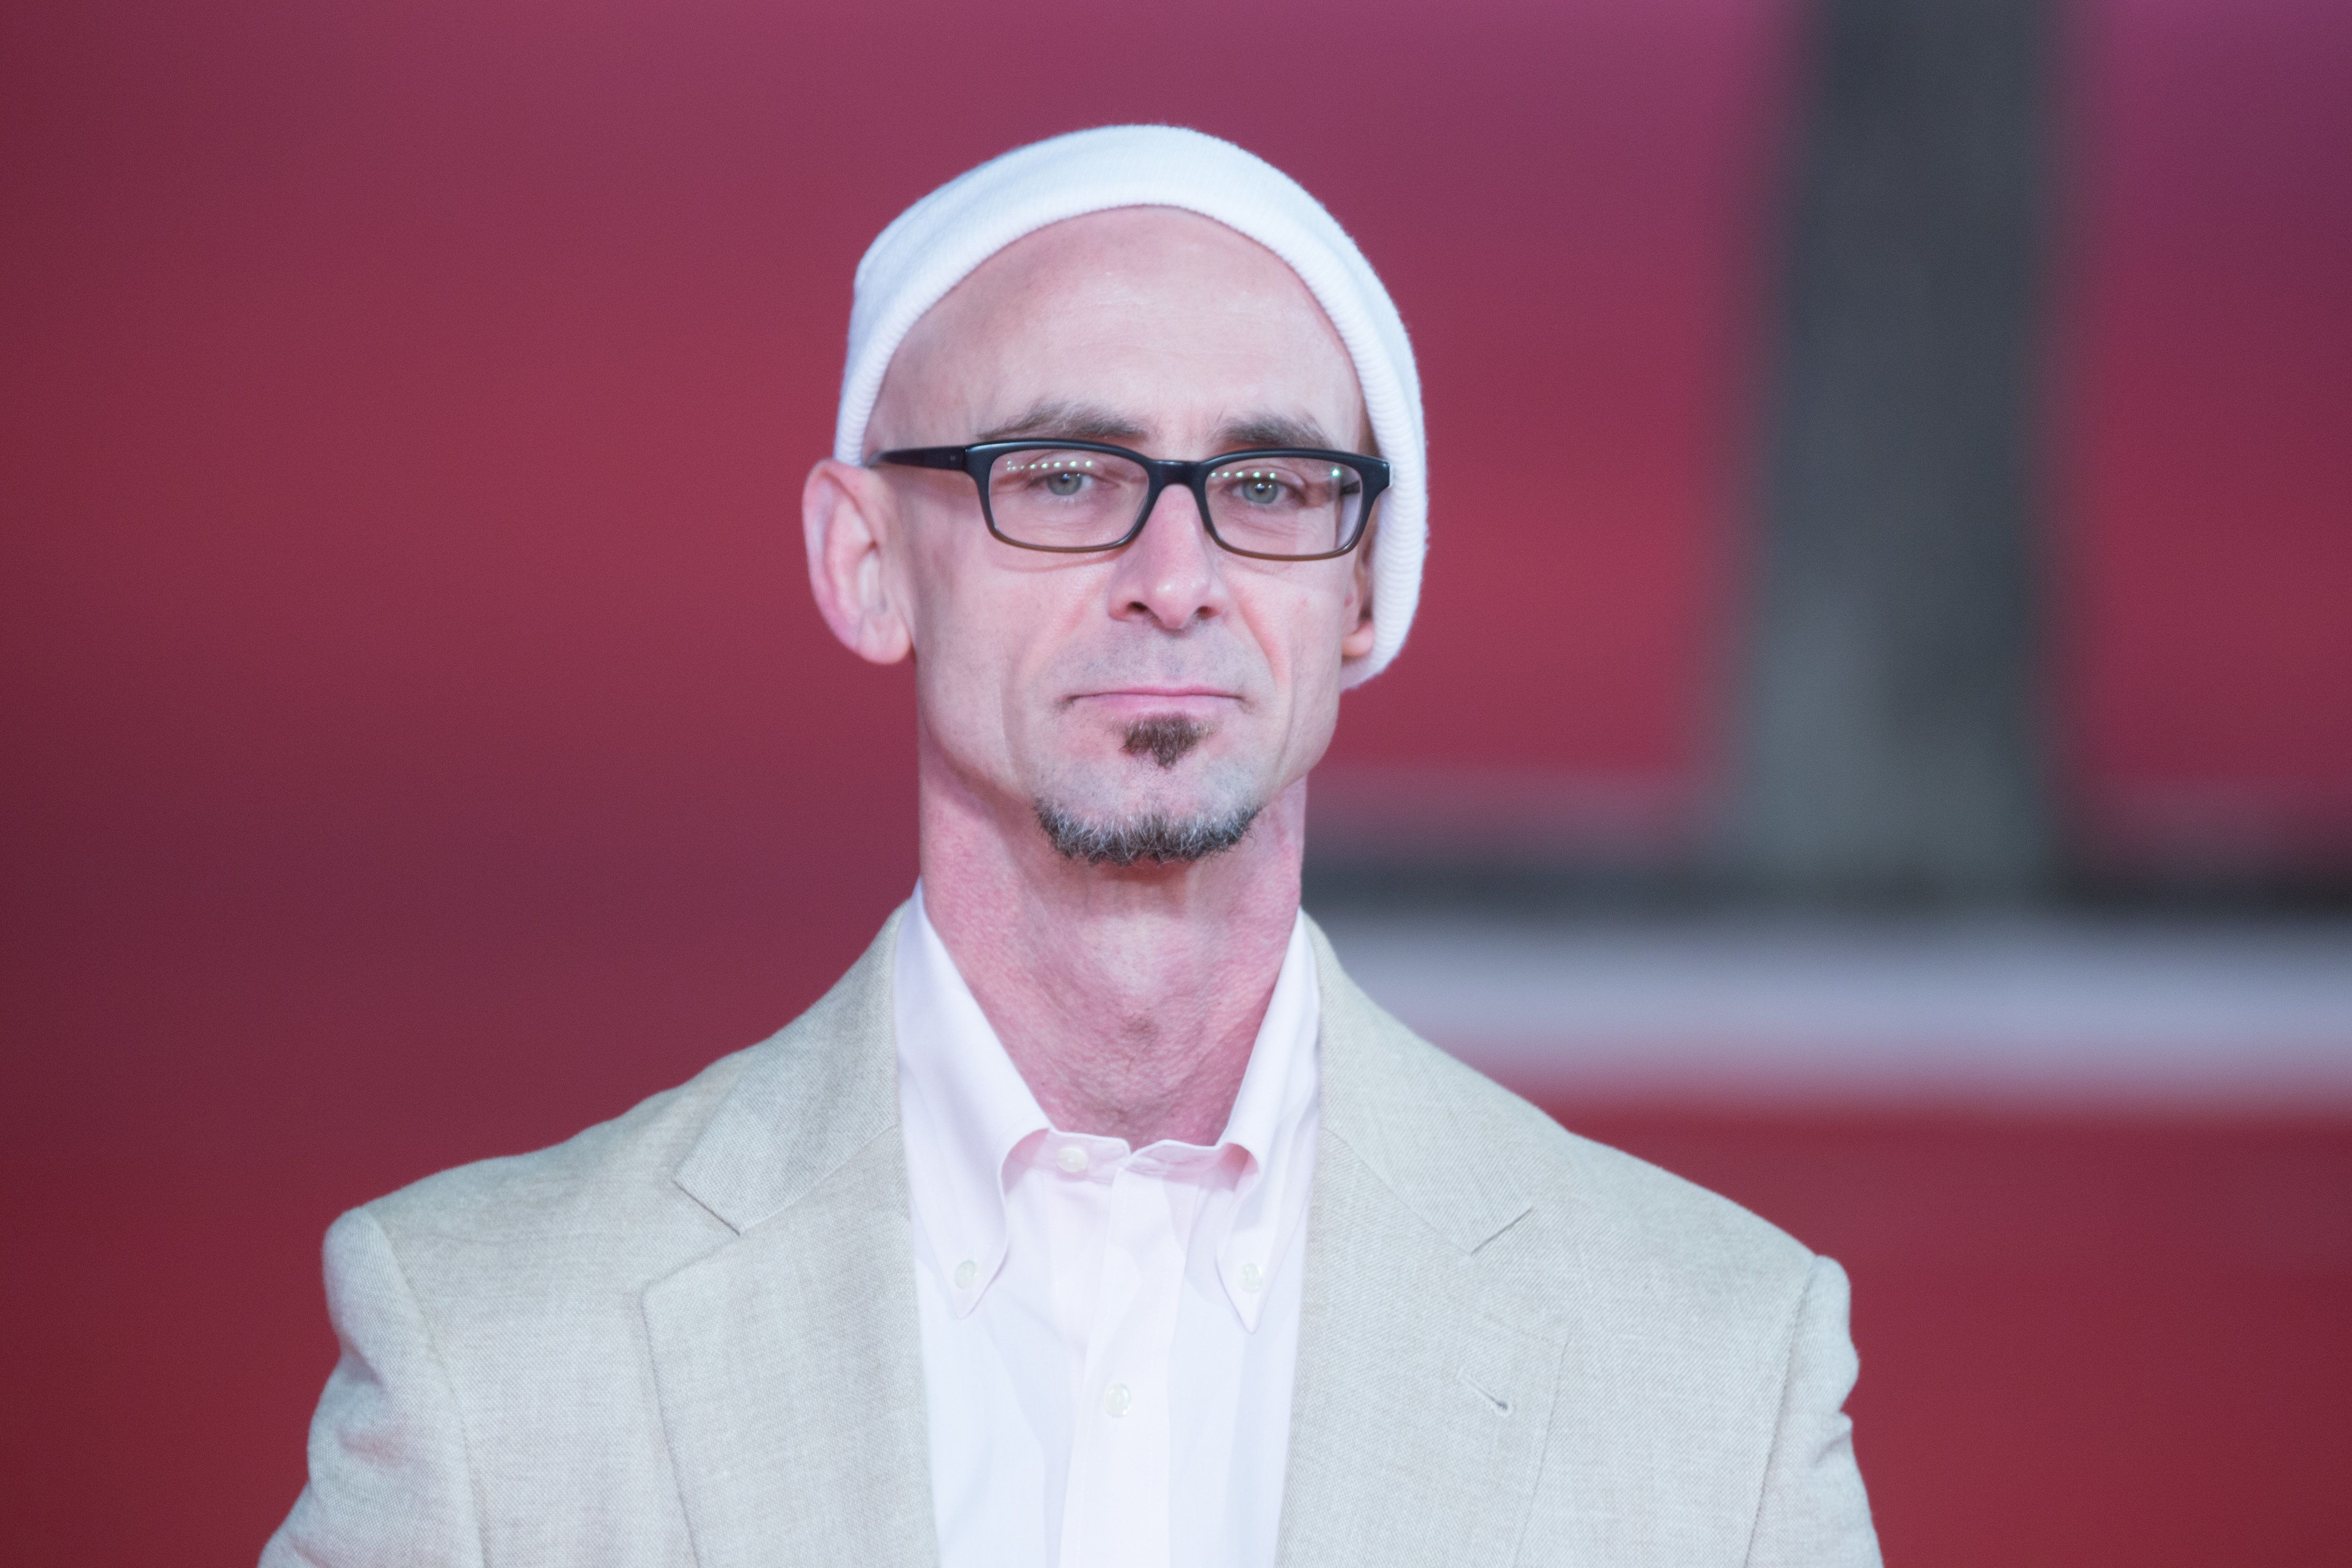 Fight Club author Chuck Palahniuk has become the victim of a multi-million dollar embezzlement